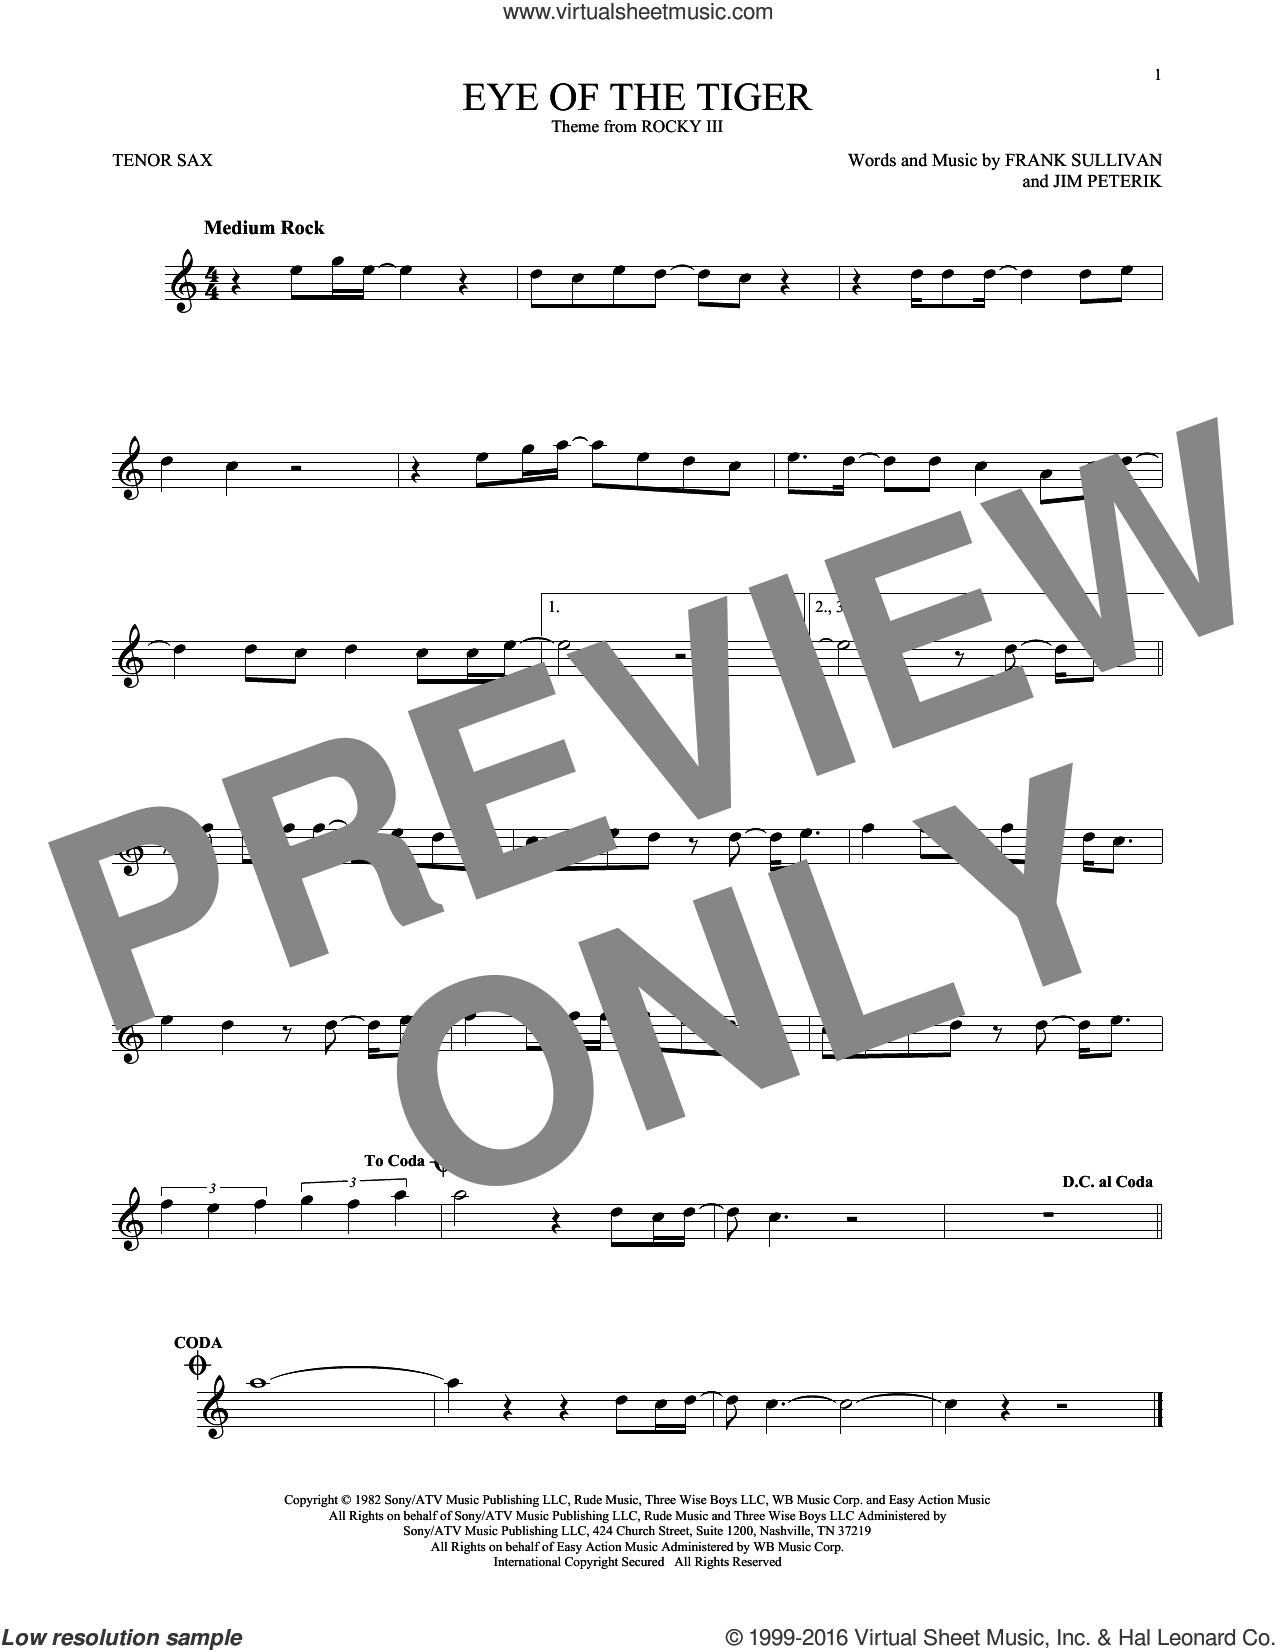 Eye Of The Tiger sheet music for tenor saxophone solo by Survivor, Frank Sullivan and Jim Peterik, intermediate skill level